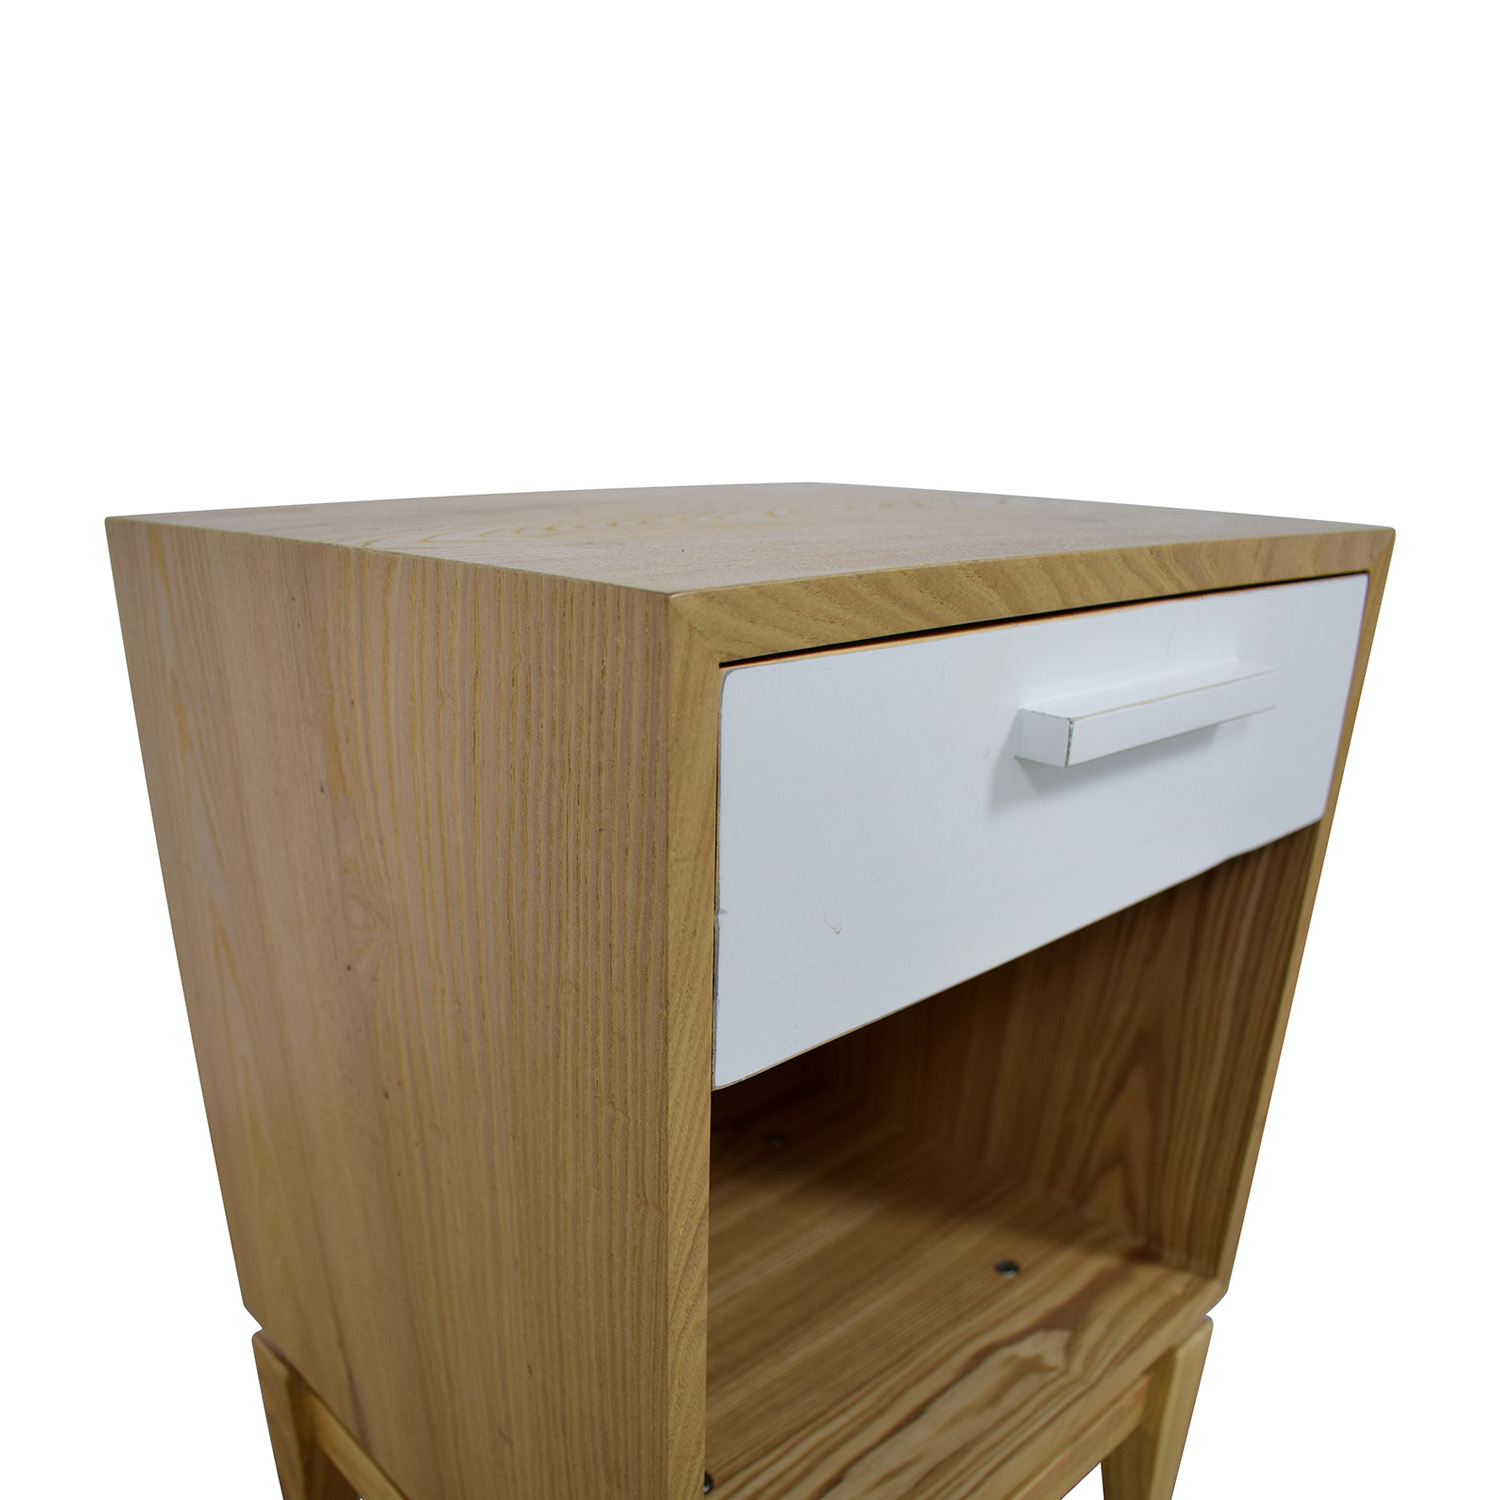 Joss & Main Joss & Main Natural and White Single Drawer End Table